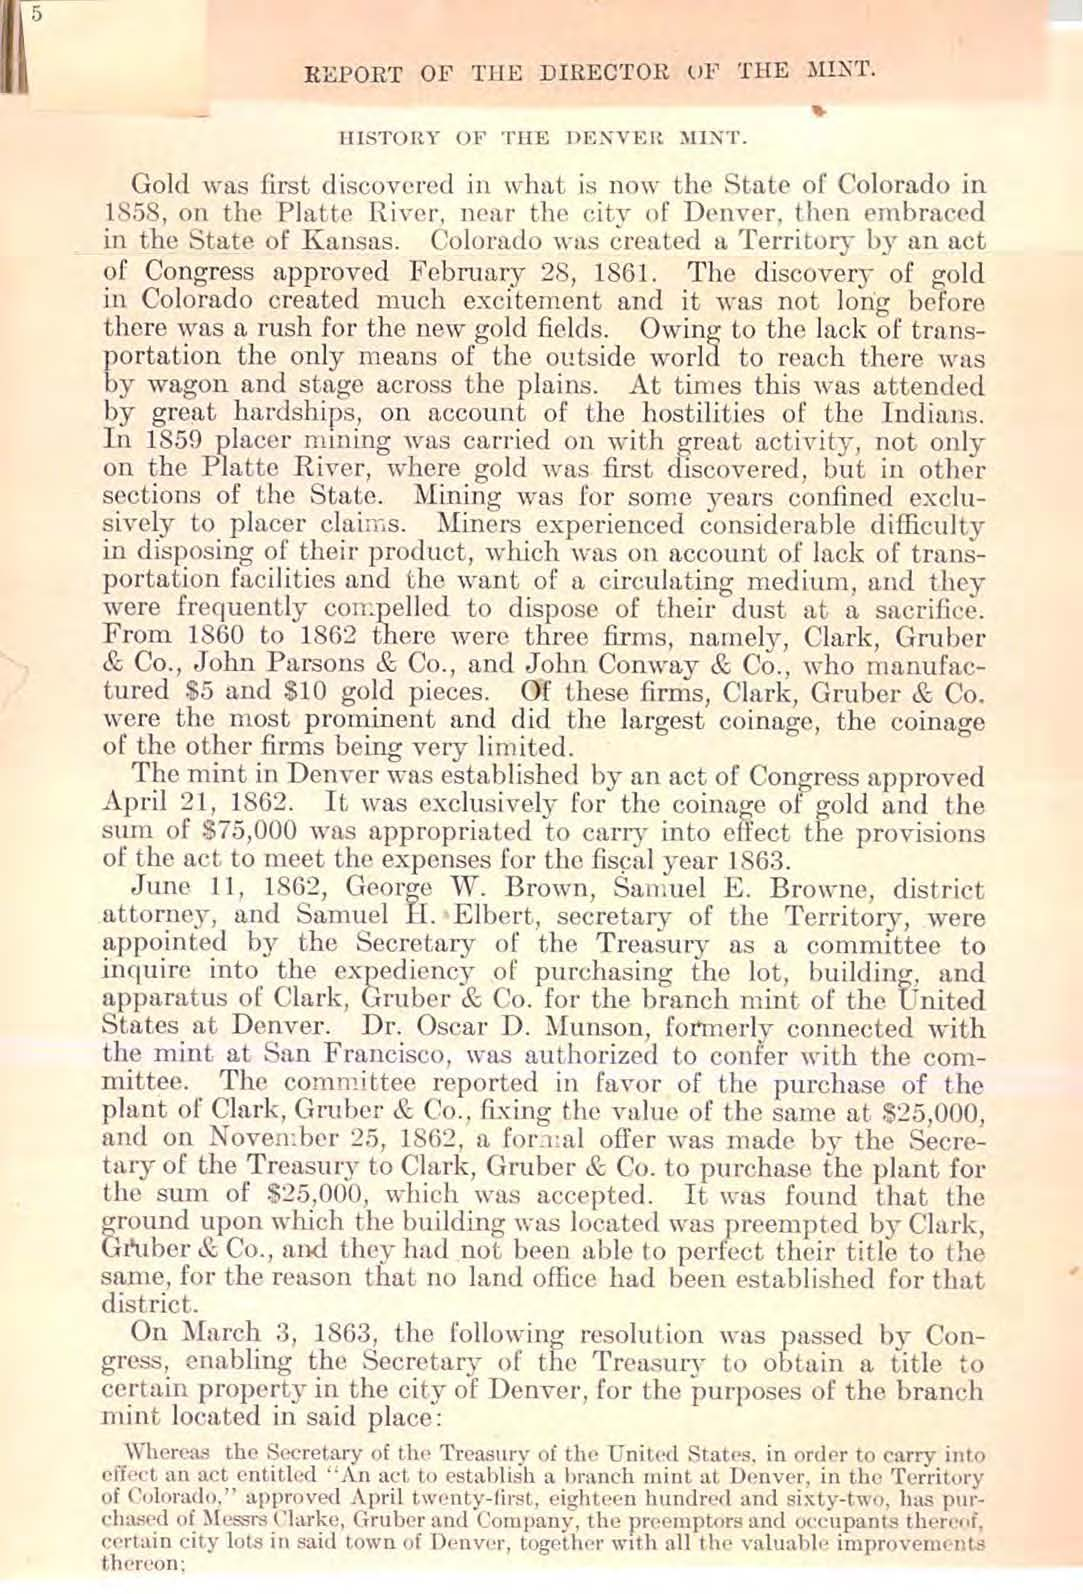 1906 Annual Report Excerpt, Page 5